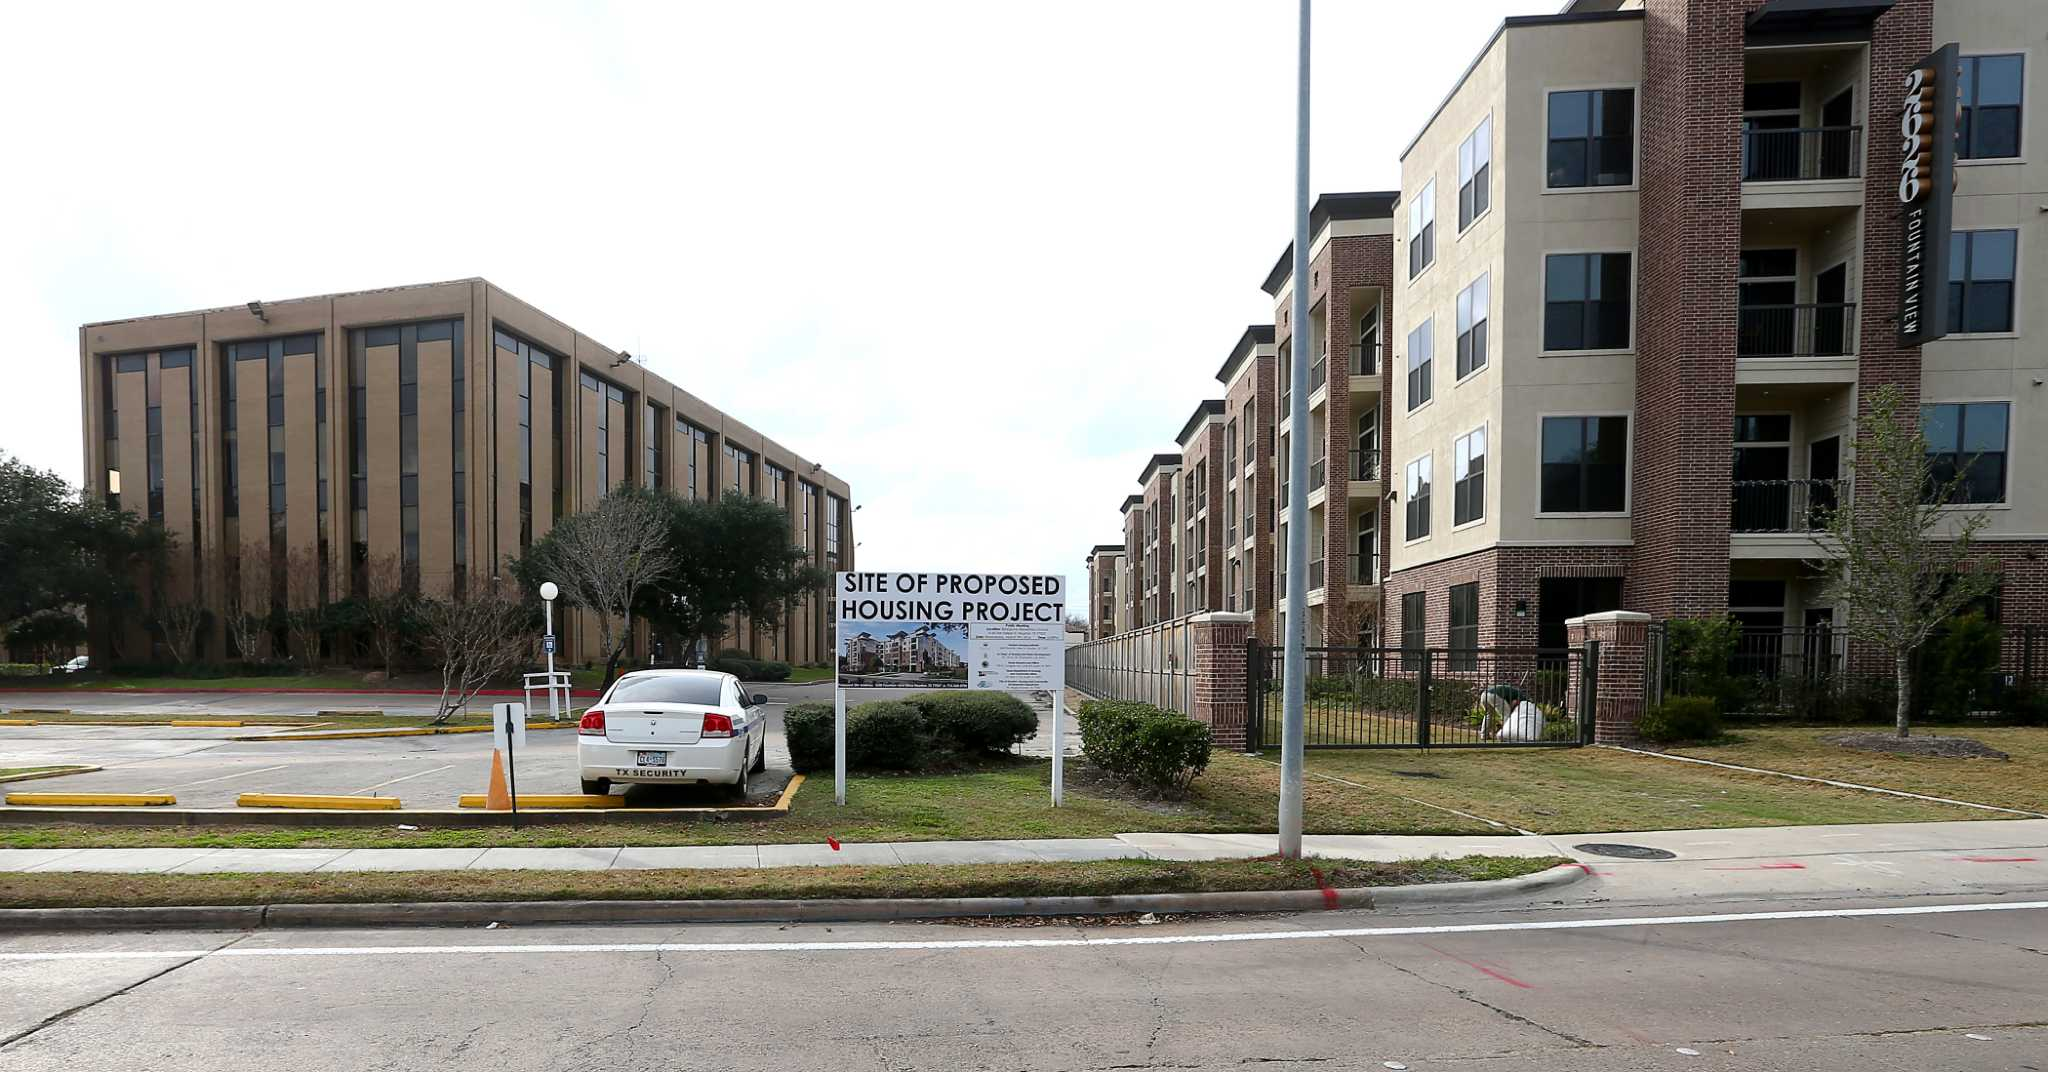 turner, feds clash over affordable housing policies - houston